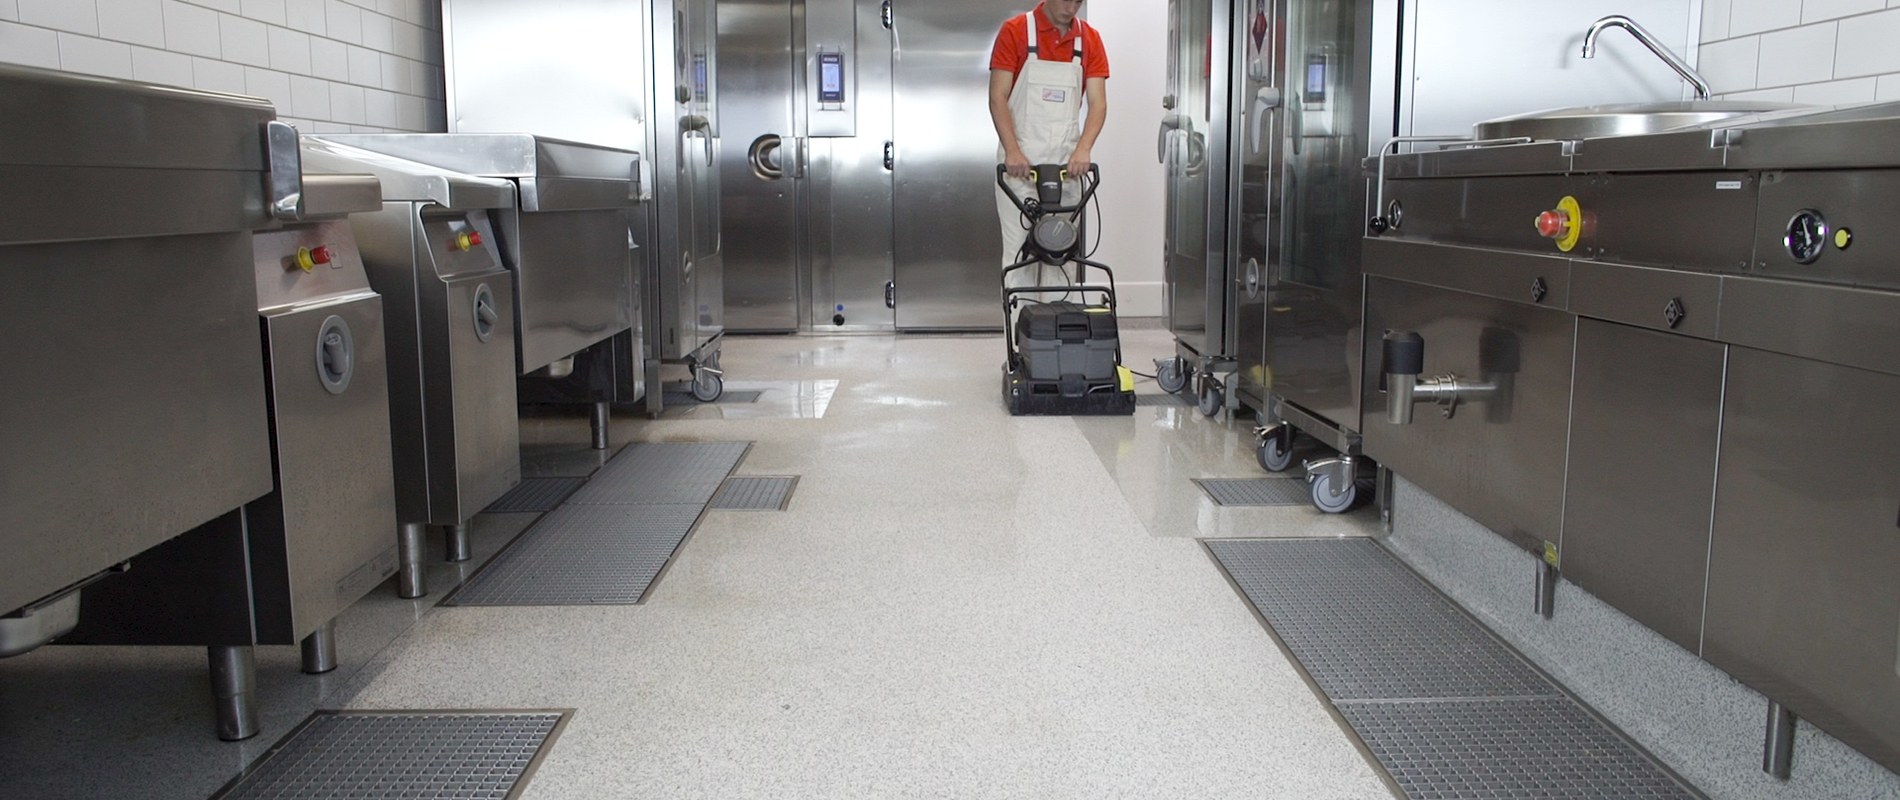 Seamless industrial kitchen floor on epoxy resin basis